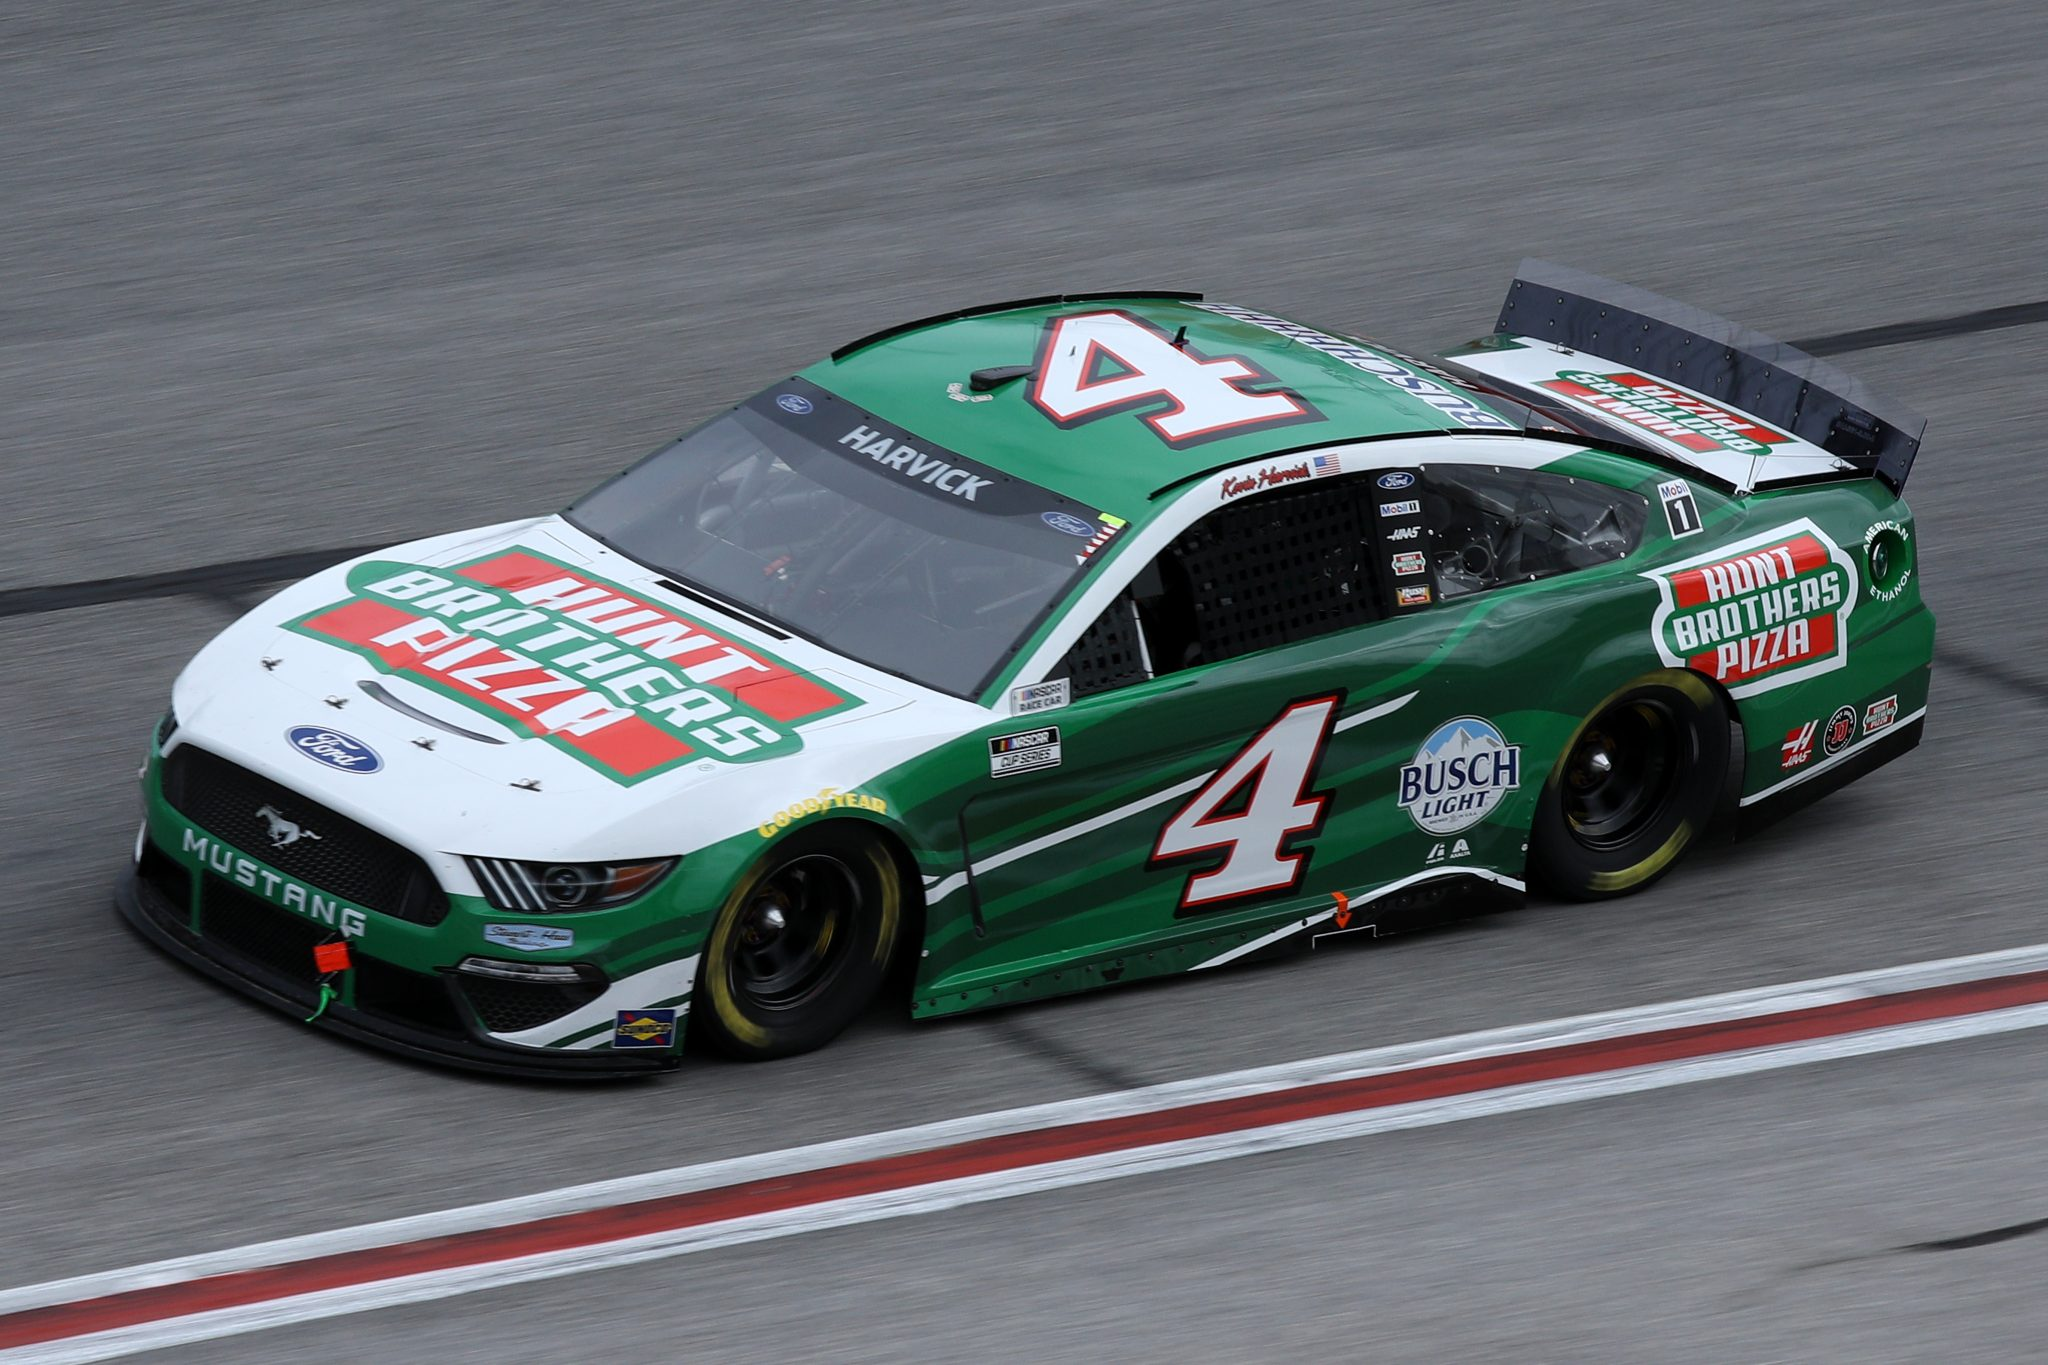 HAMPTON, GEORGIA - MARCH 21: Kevin Harvick, driver of the #4 Hunt Brothers Pizza Ford, drives during the NASCAR Cup Series Folds of Honor QuikTrip 500 at Atlanta Motor Speedway on March 21, 2021 in Hampton, Georgia. (Photo by Sean Gardner/Getty Images) | Getty Images